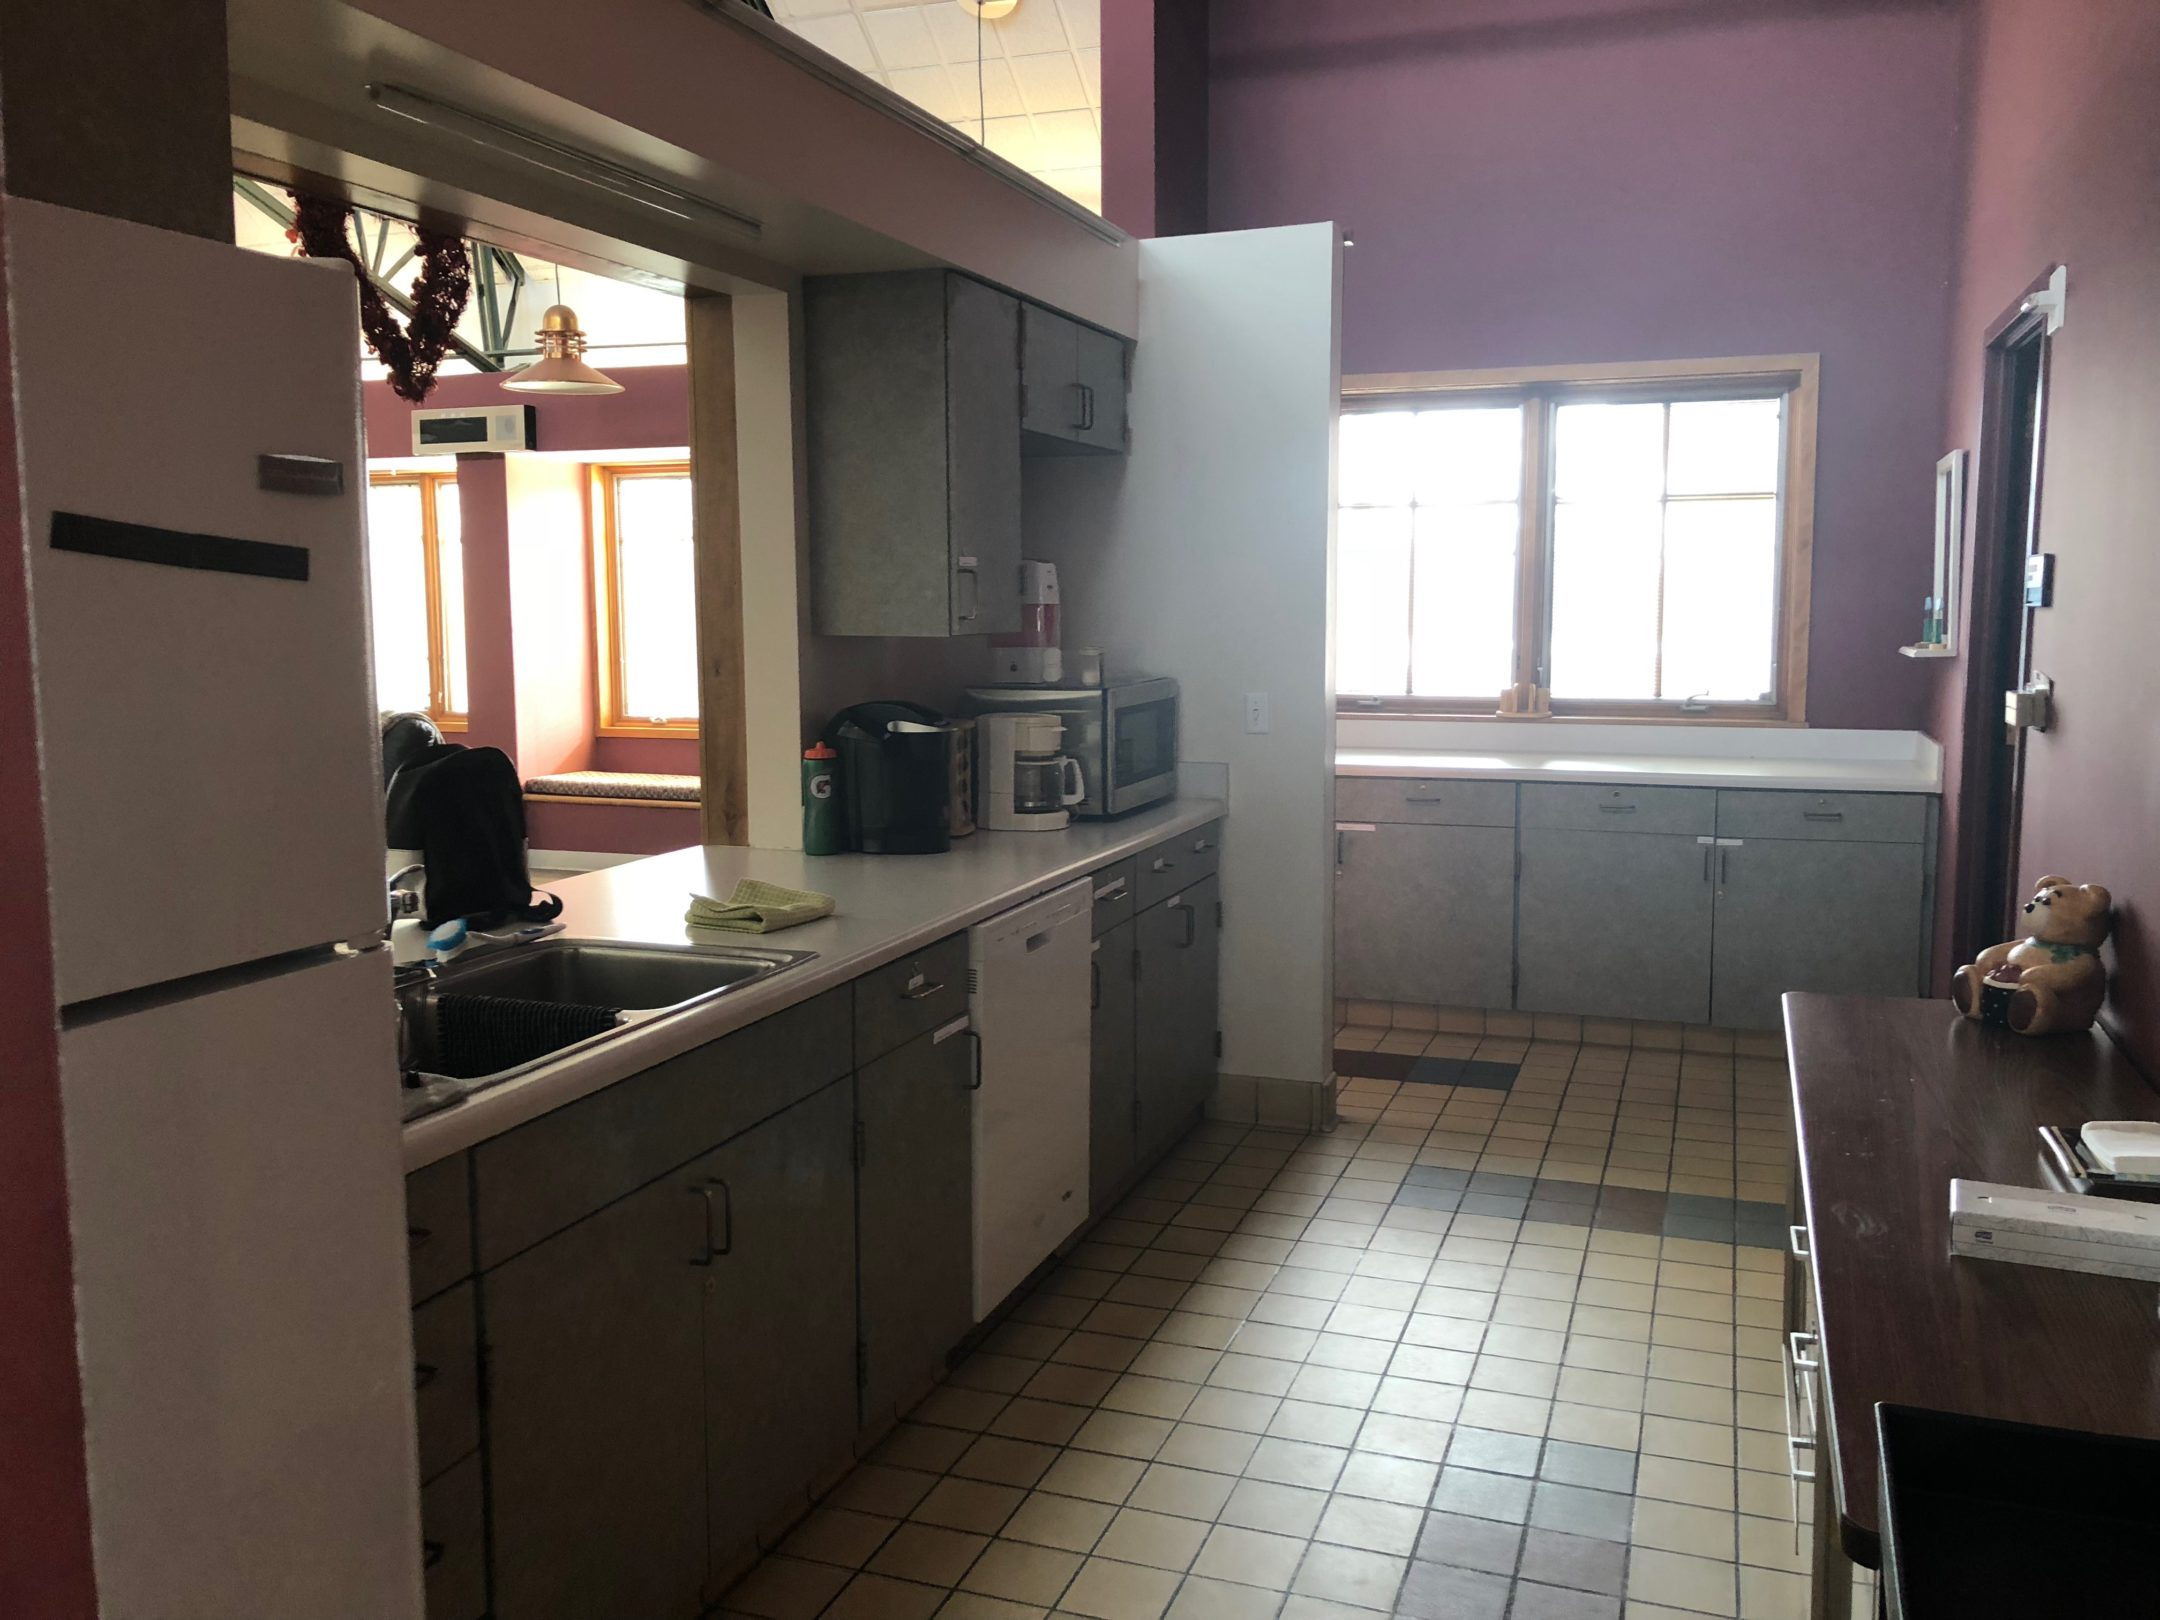 Left side is a Fridge, a sink, dishwasher and cabinets. A large opening in the wall above the kitchen looks out to the upper level lounge.